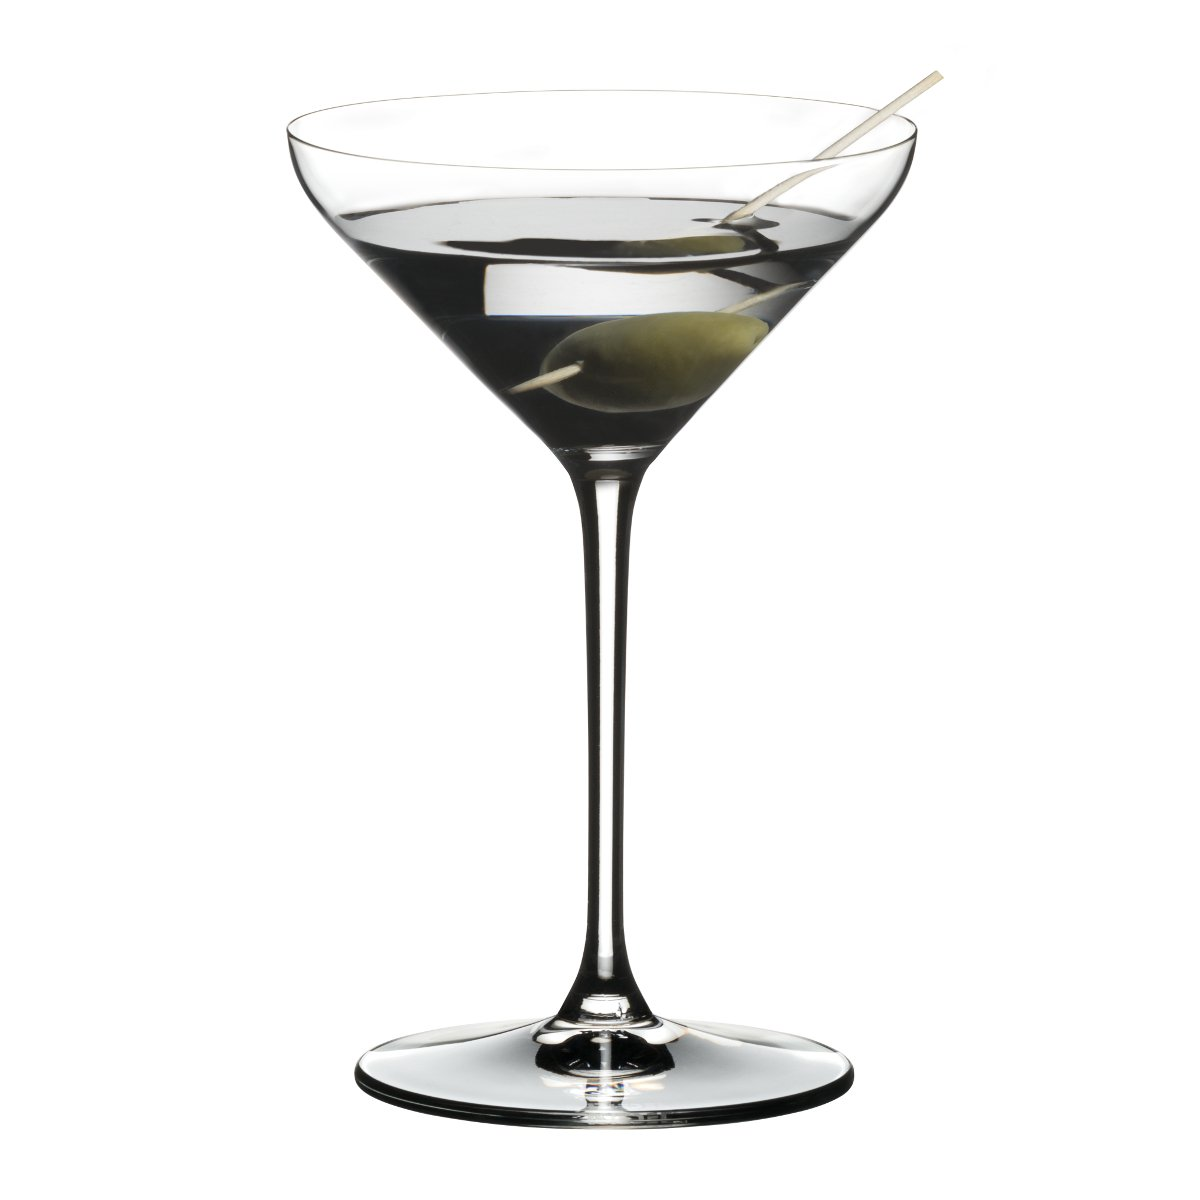 Riedel Extreme Crystal Martini Cocktail Glass, Buy 3 Get 4 Glasses